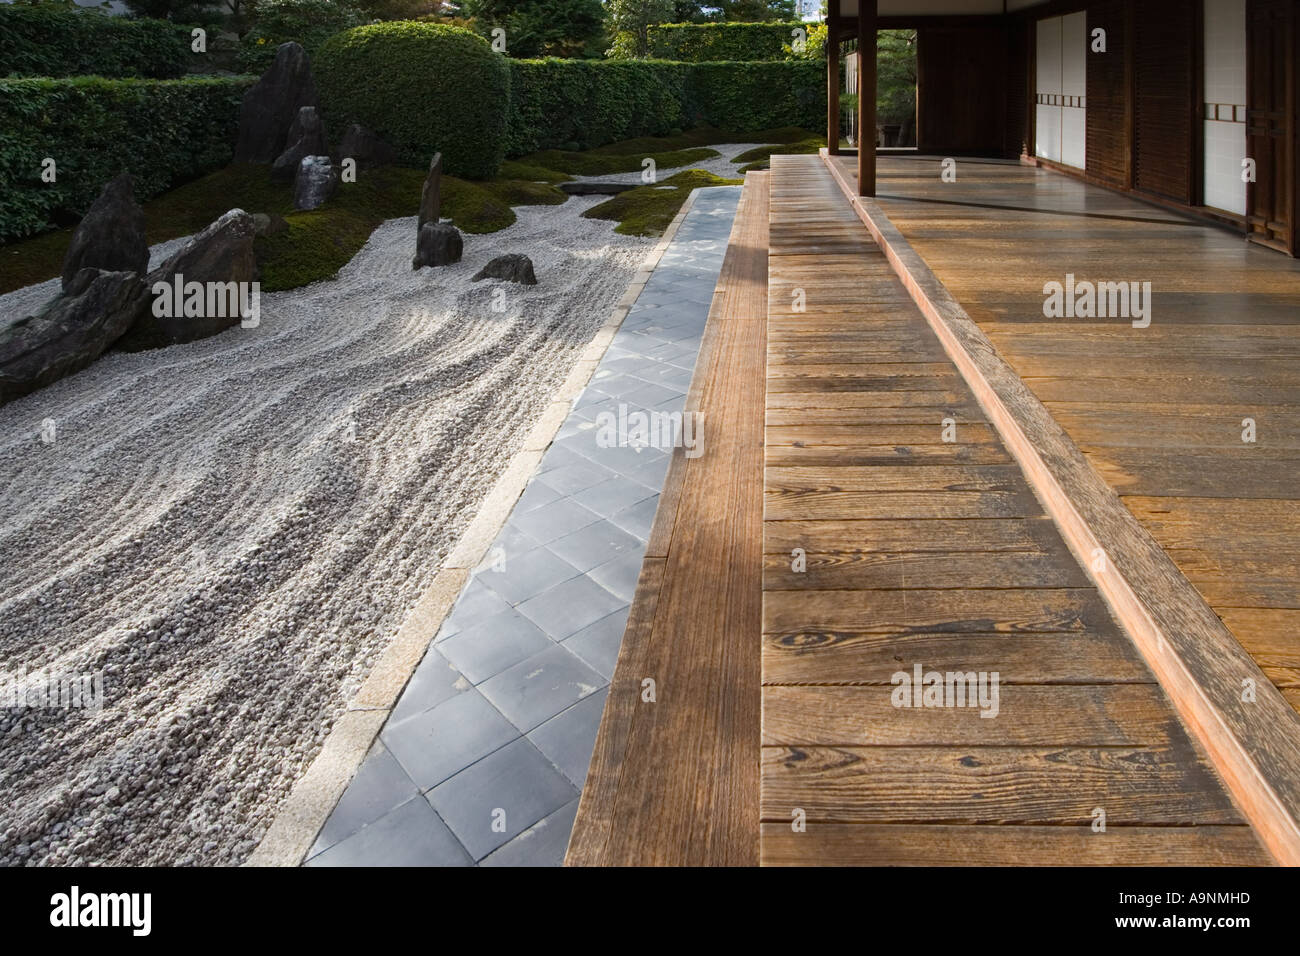 The zen rock garden at Zuiho in which is a subtemple of Daitokuji Temple in Kyoto Kansai Region Japan - Stock Image